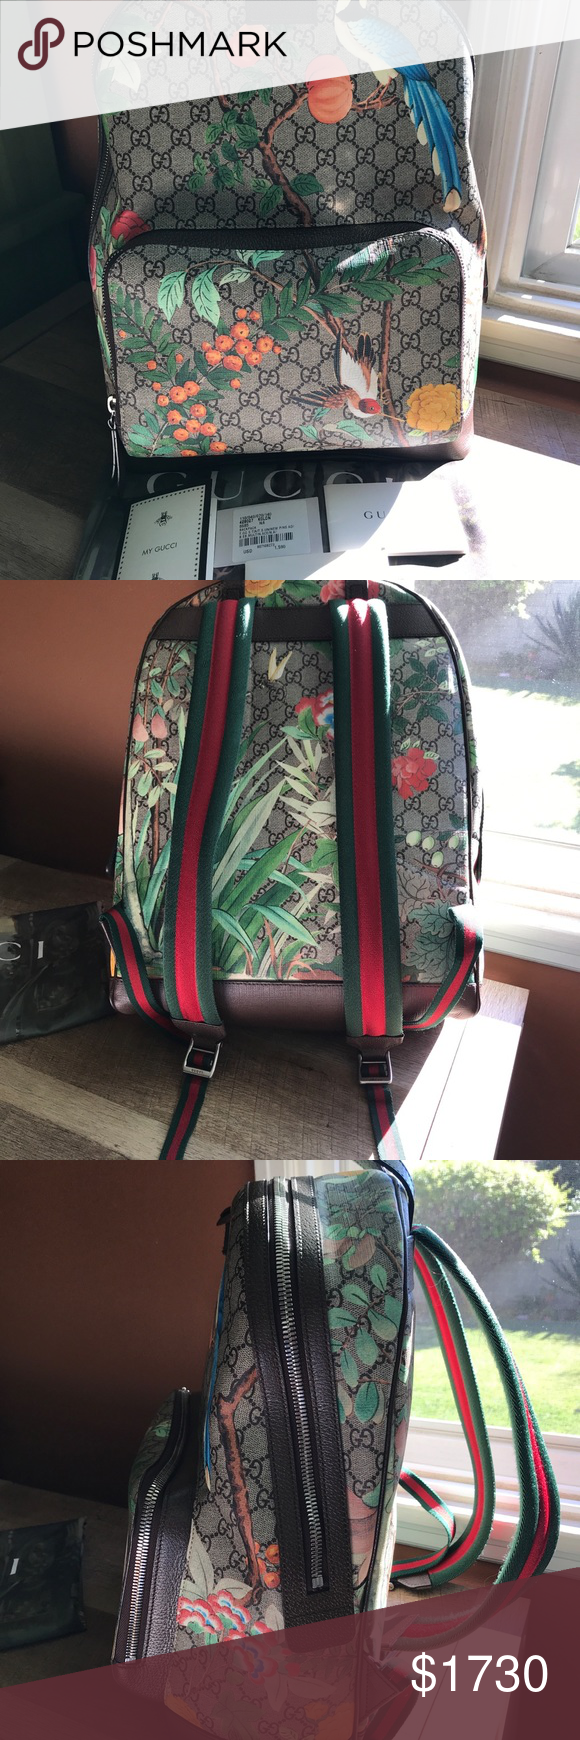 ef9cad72968 Spotted while shopping on Poshmark  Gucci GG Supreme Tian Backpack!   poshmark  fashion  shopping  style  Gucci  Other